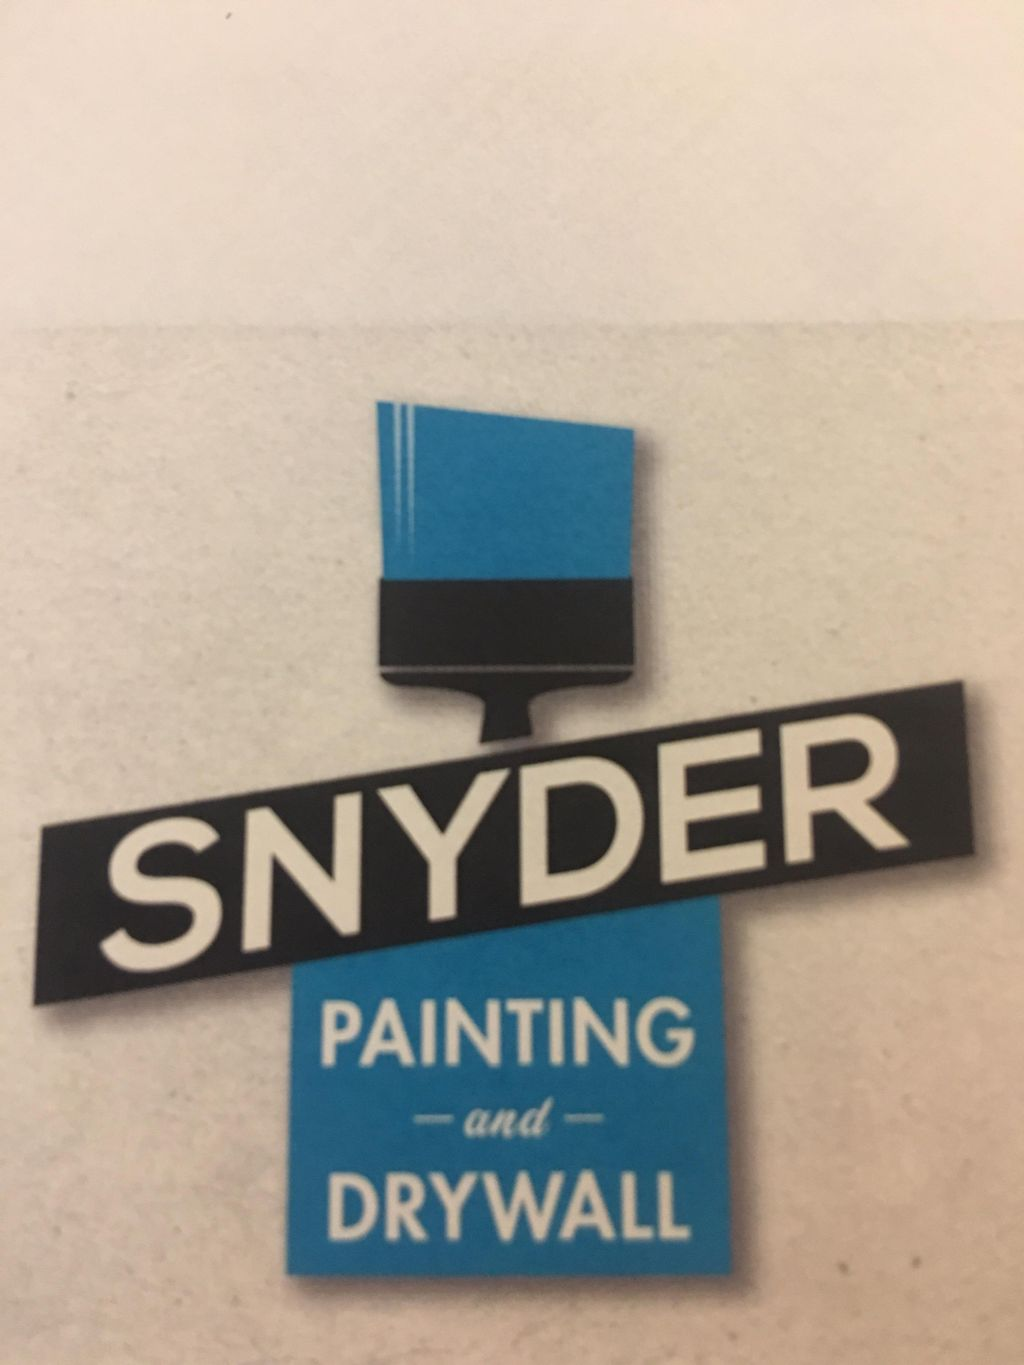 Snyder Painting And Drywall LLC